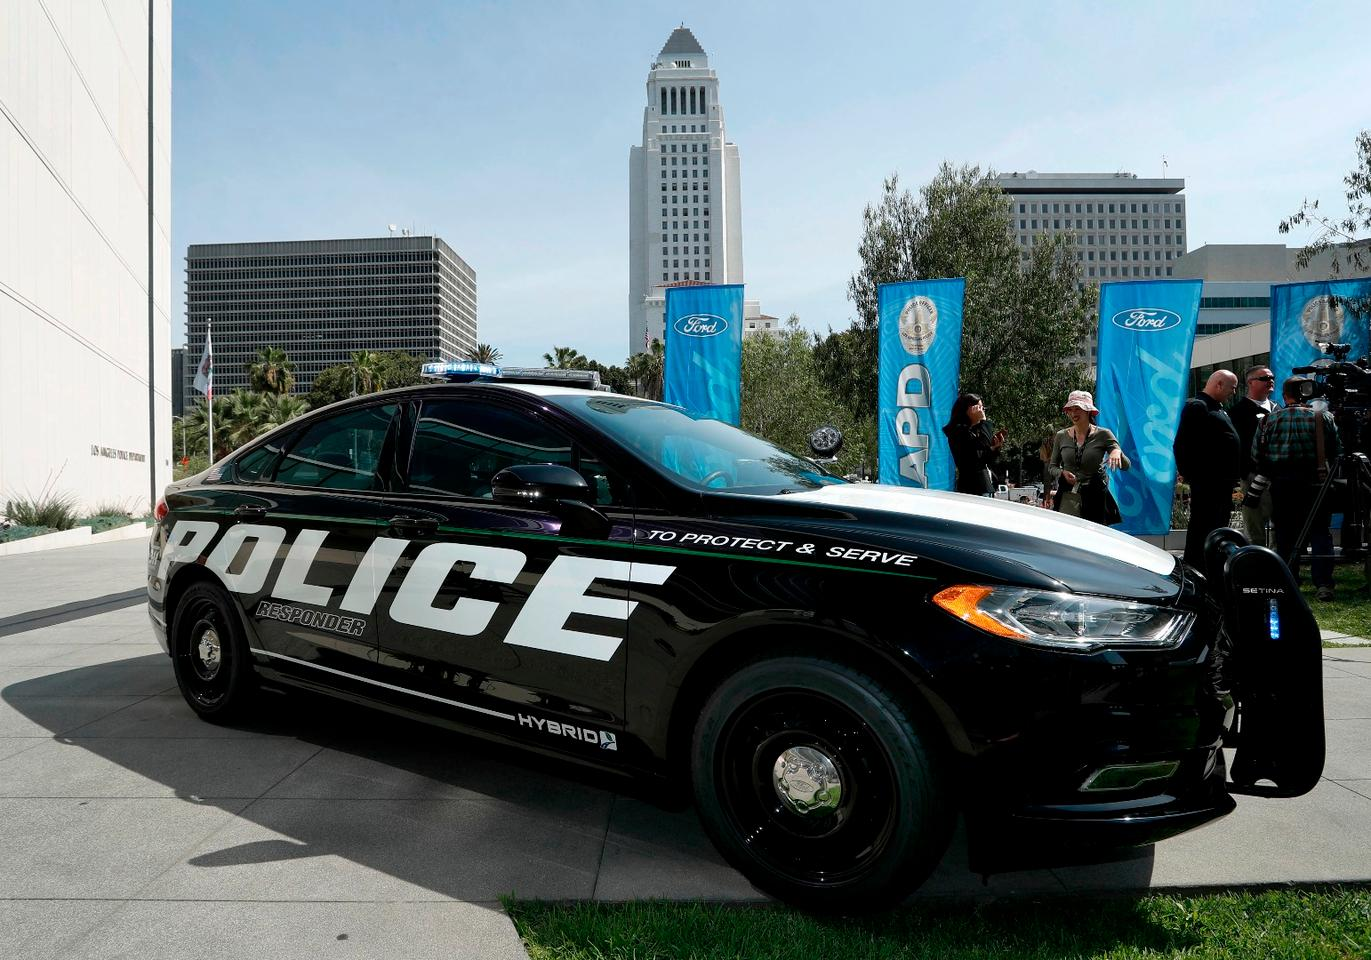 The Hybrid Responder is expected to deliver big fuel savings to local police forces